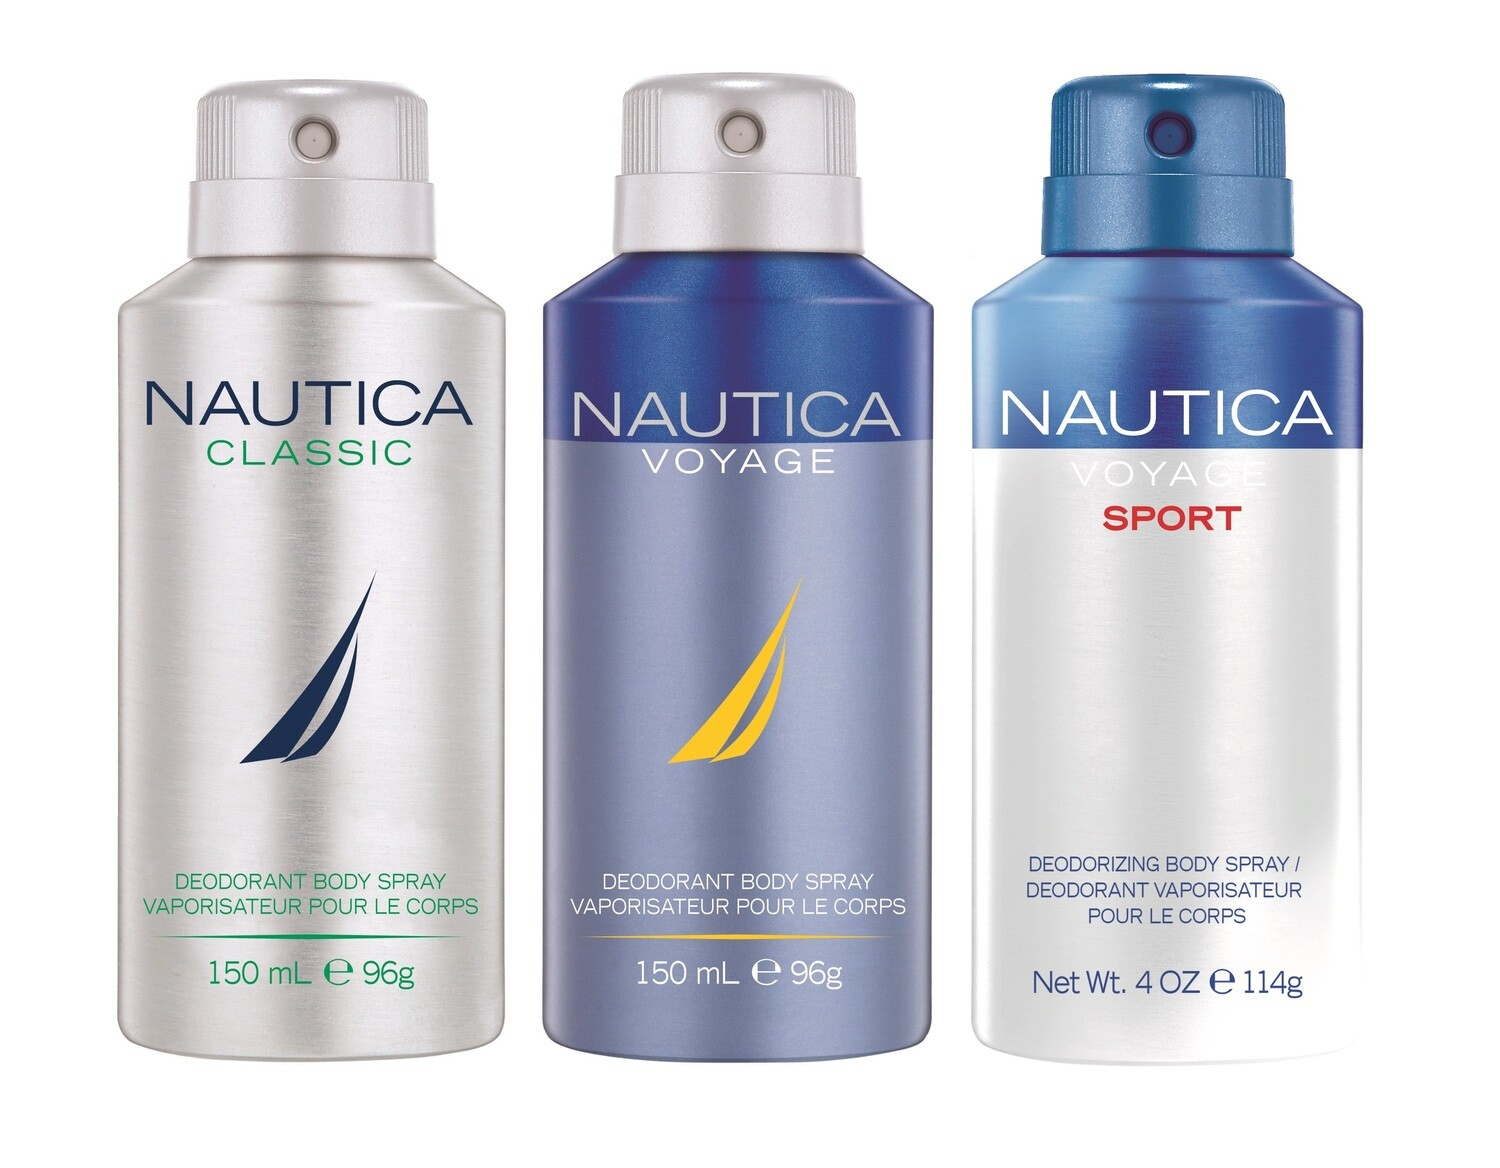 Nautica Classic + Voyage + Voyage Sports Deo Combo Set - Pack of 3